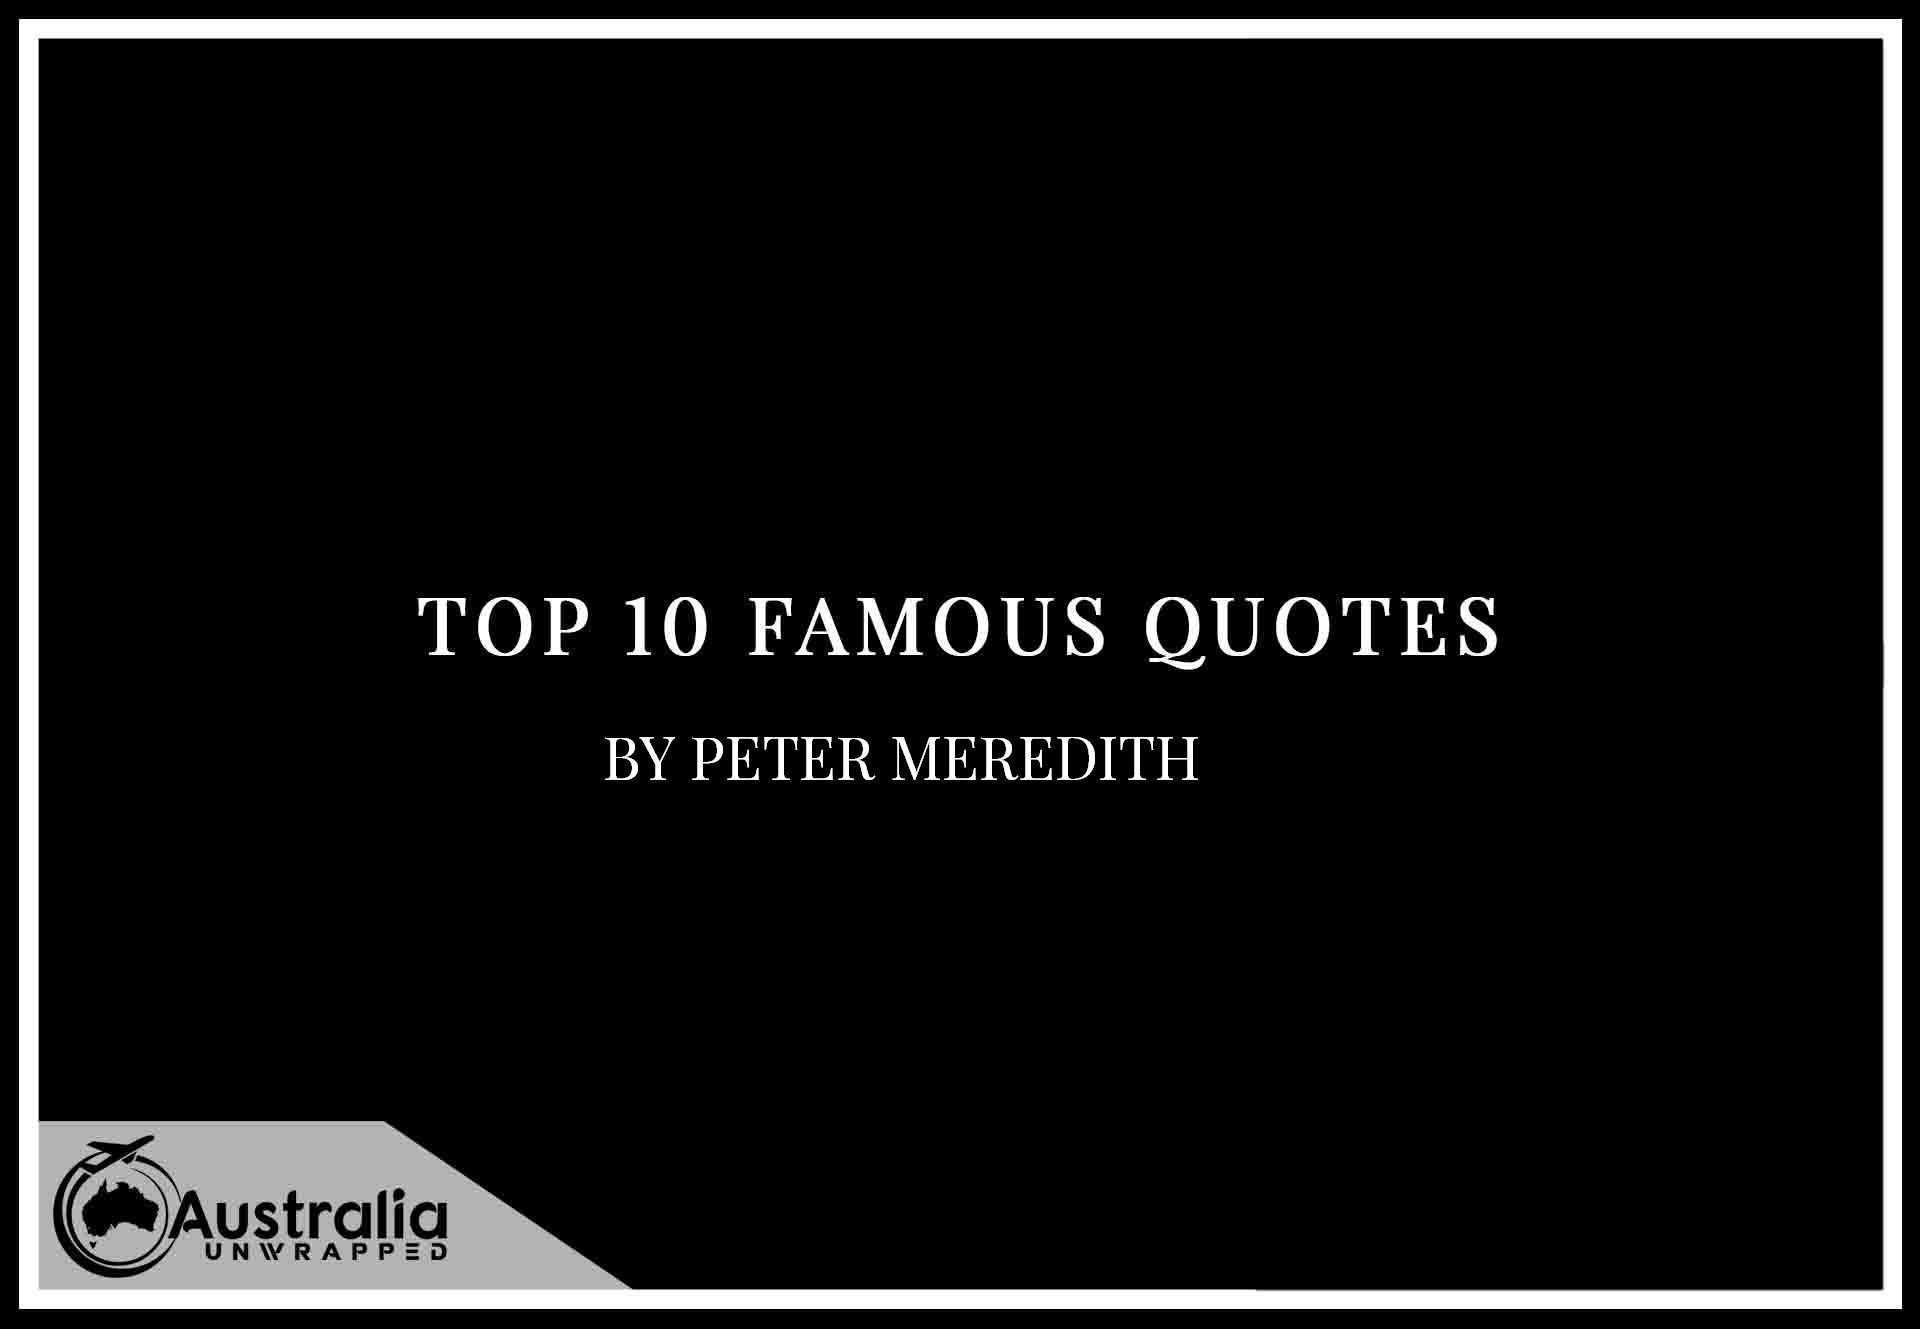 Top 10 Famous Quotes by Author Peter Meredith